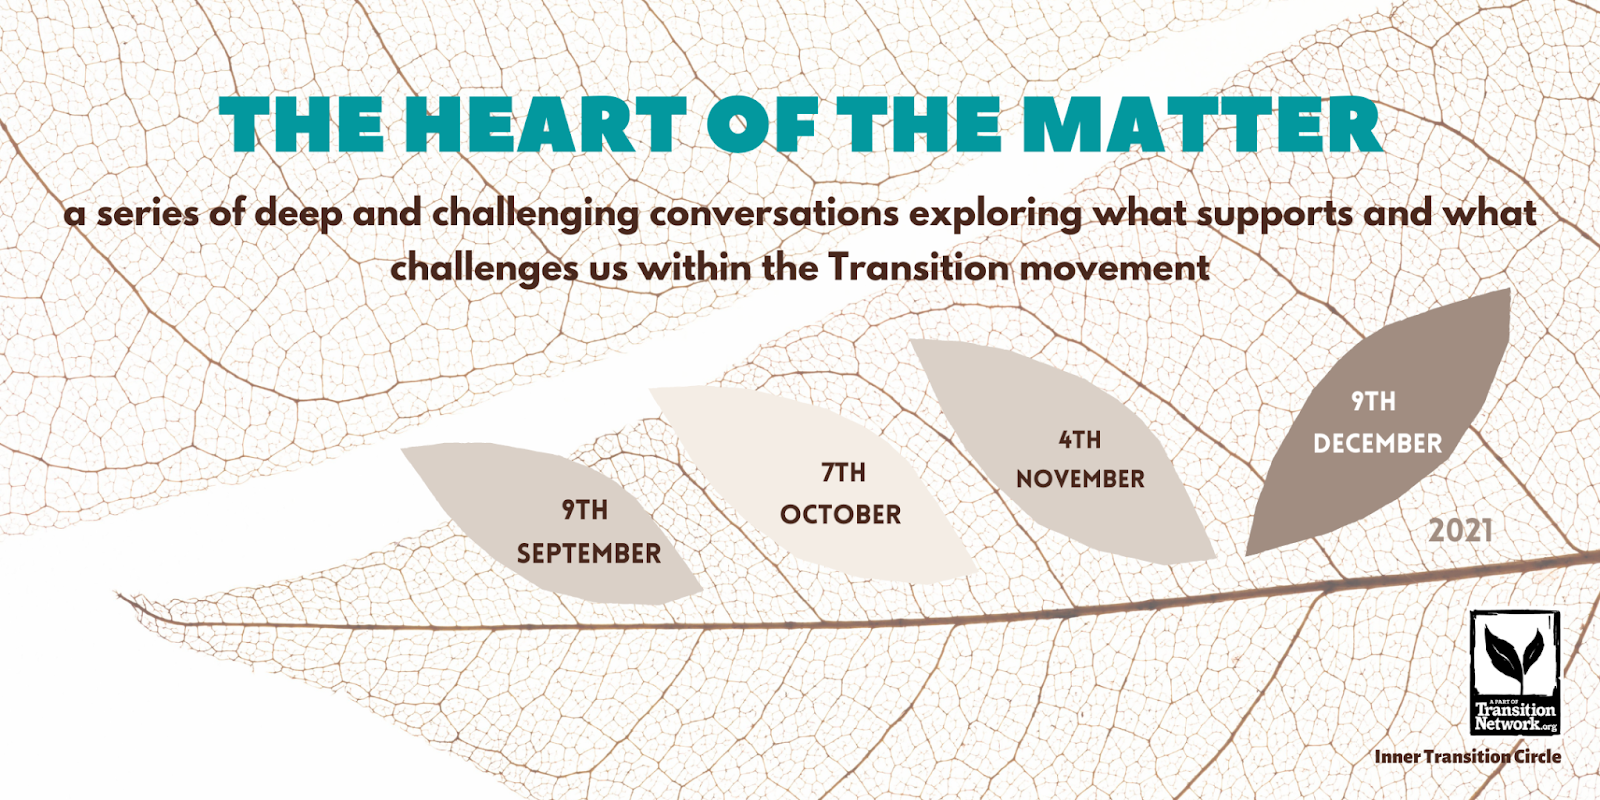 """Flyer advertising the Heart of the Matter webinars, """"a series of deep and challenging conversations exploring what supports and what challenges us within the Transition movement"""". Against the background of a leaf skeleton there are 4 more leaves each containing the date of a webinar. 9th September, 7th October, 4th November, 9th December"""